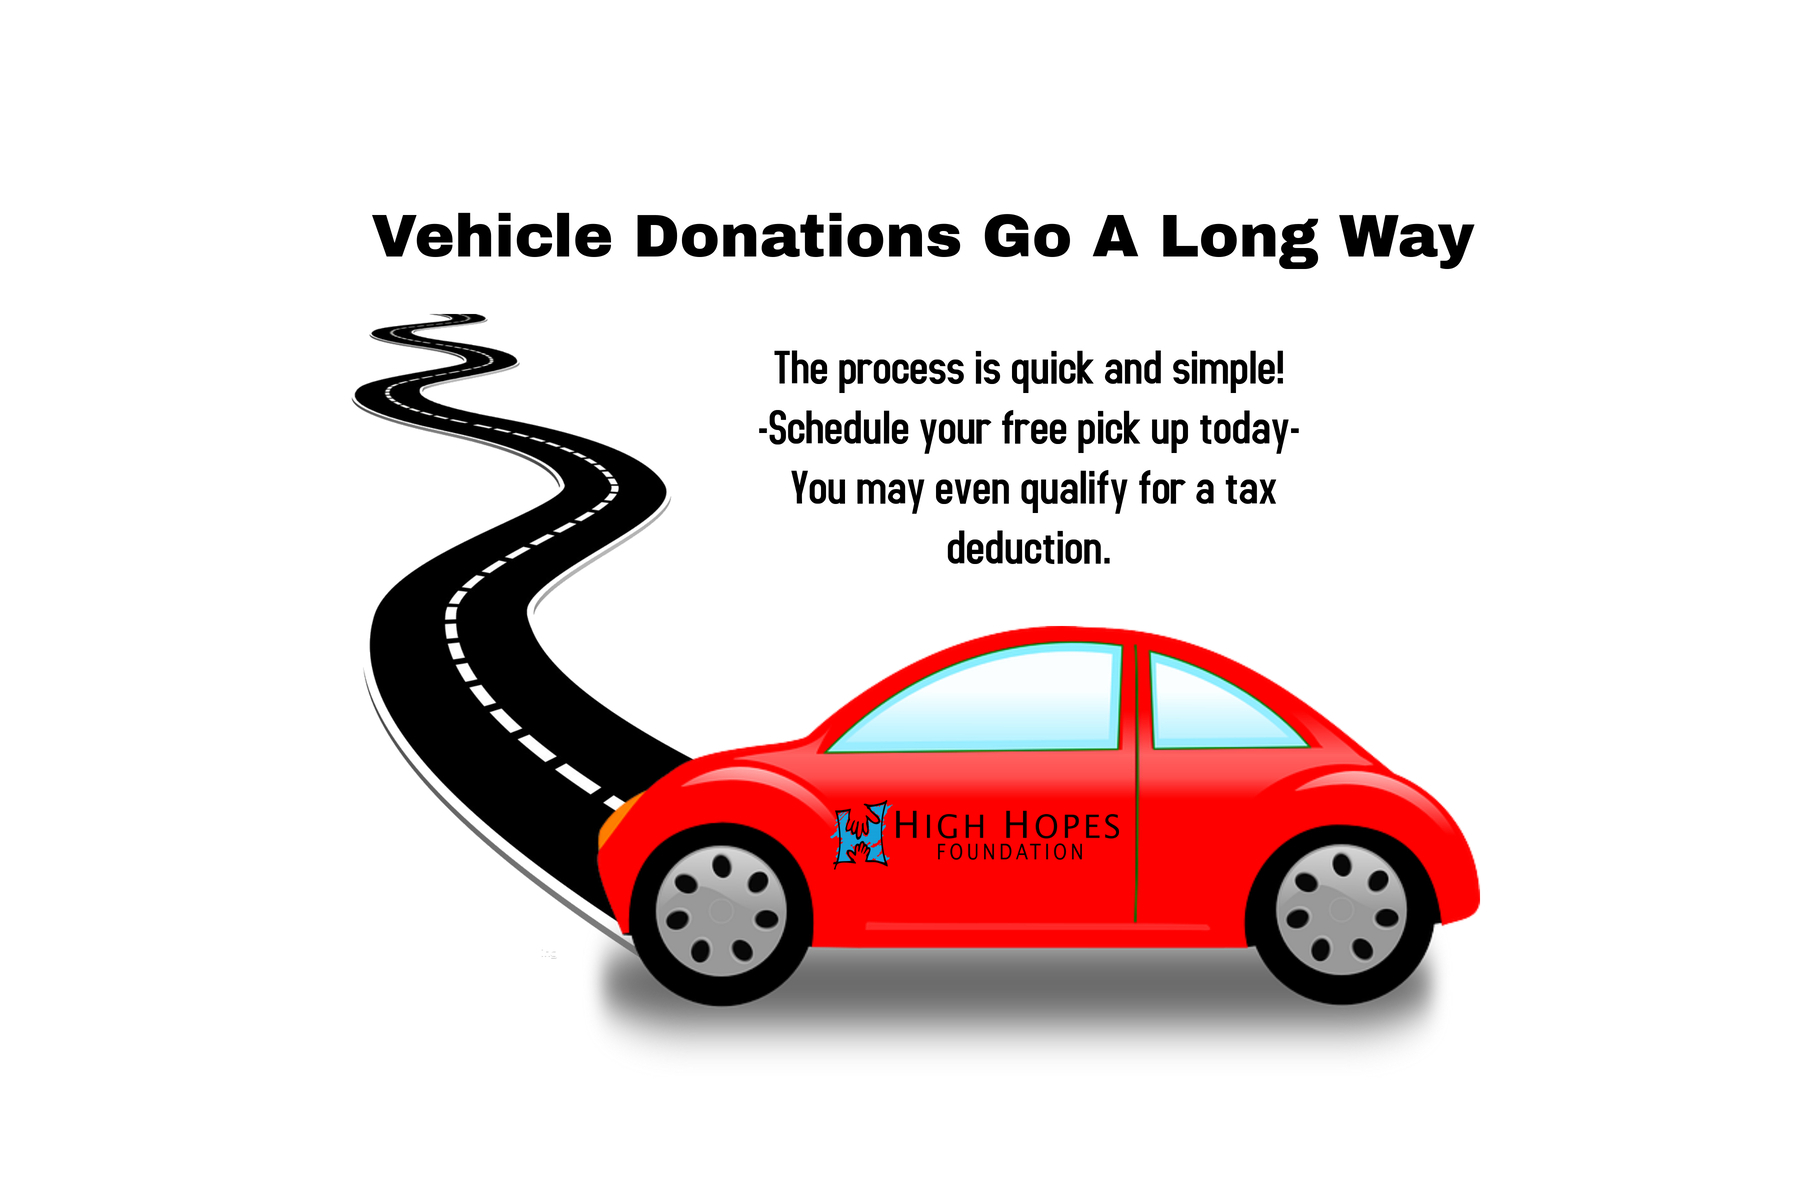 Avoid the hassle of a private sale or taking a loss at trade-in. Consider donating your old vehicle and helping to support High Hopes Foundation at the same time. Through our partnerships, we can accept cars, trucks, boats, RV's, trailers both locally and nationwide!